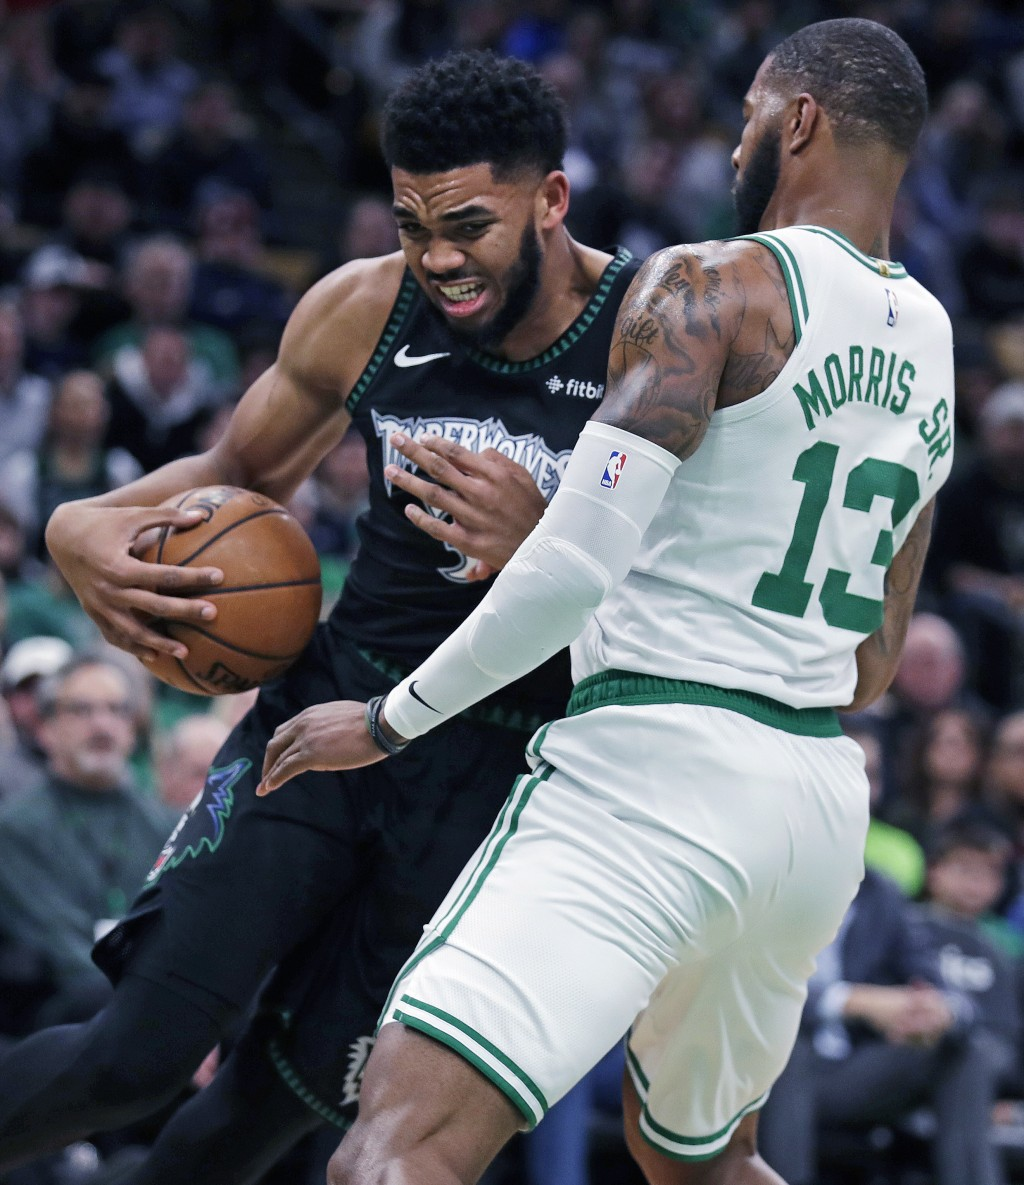 Minnesota Timberwolves center Karl-Anthony Towns, left, grimaces as he collides with Boston Celtics forward Marcus Morris (13) during the first quarte